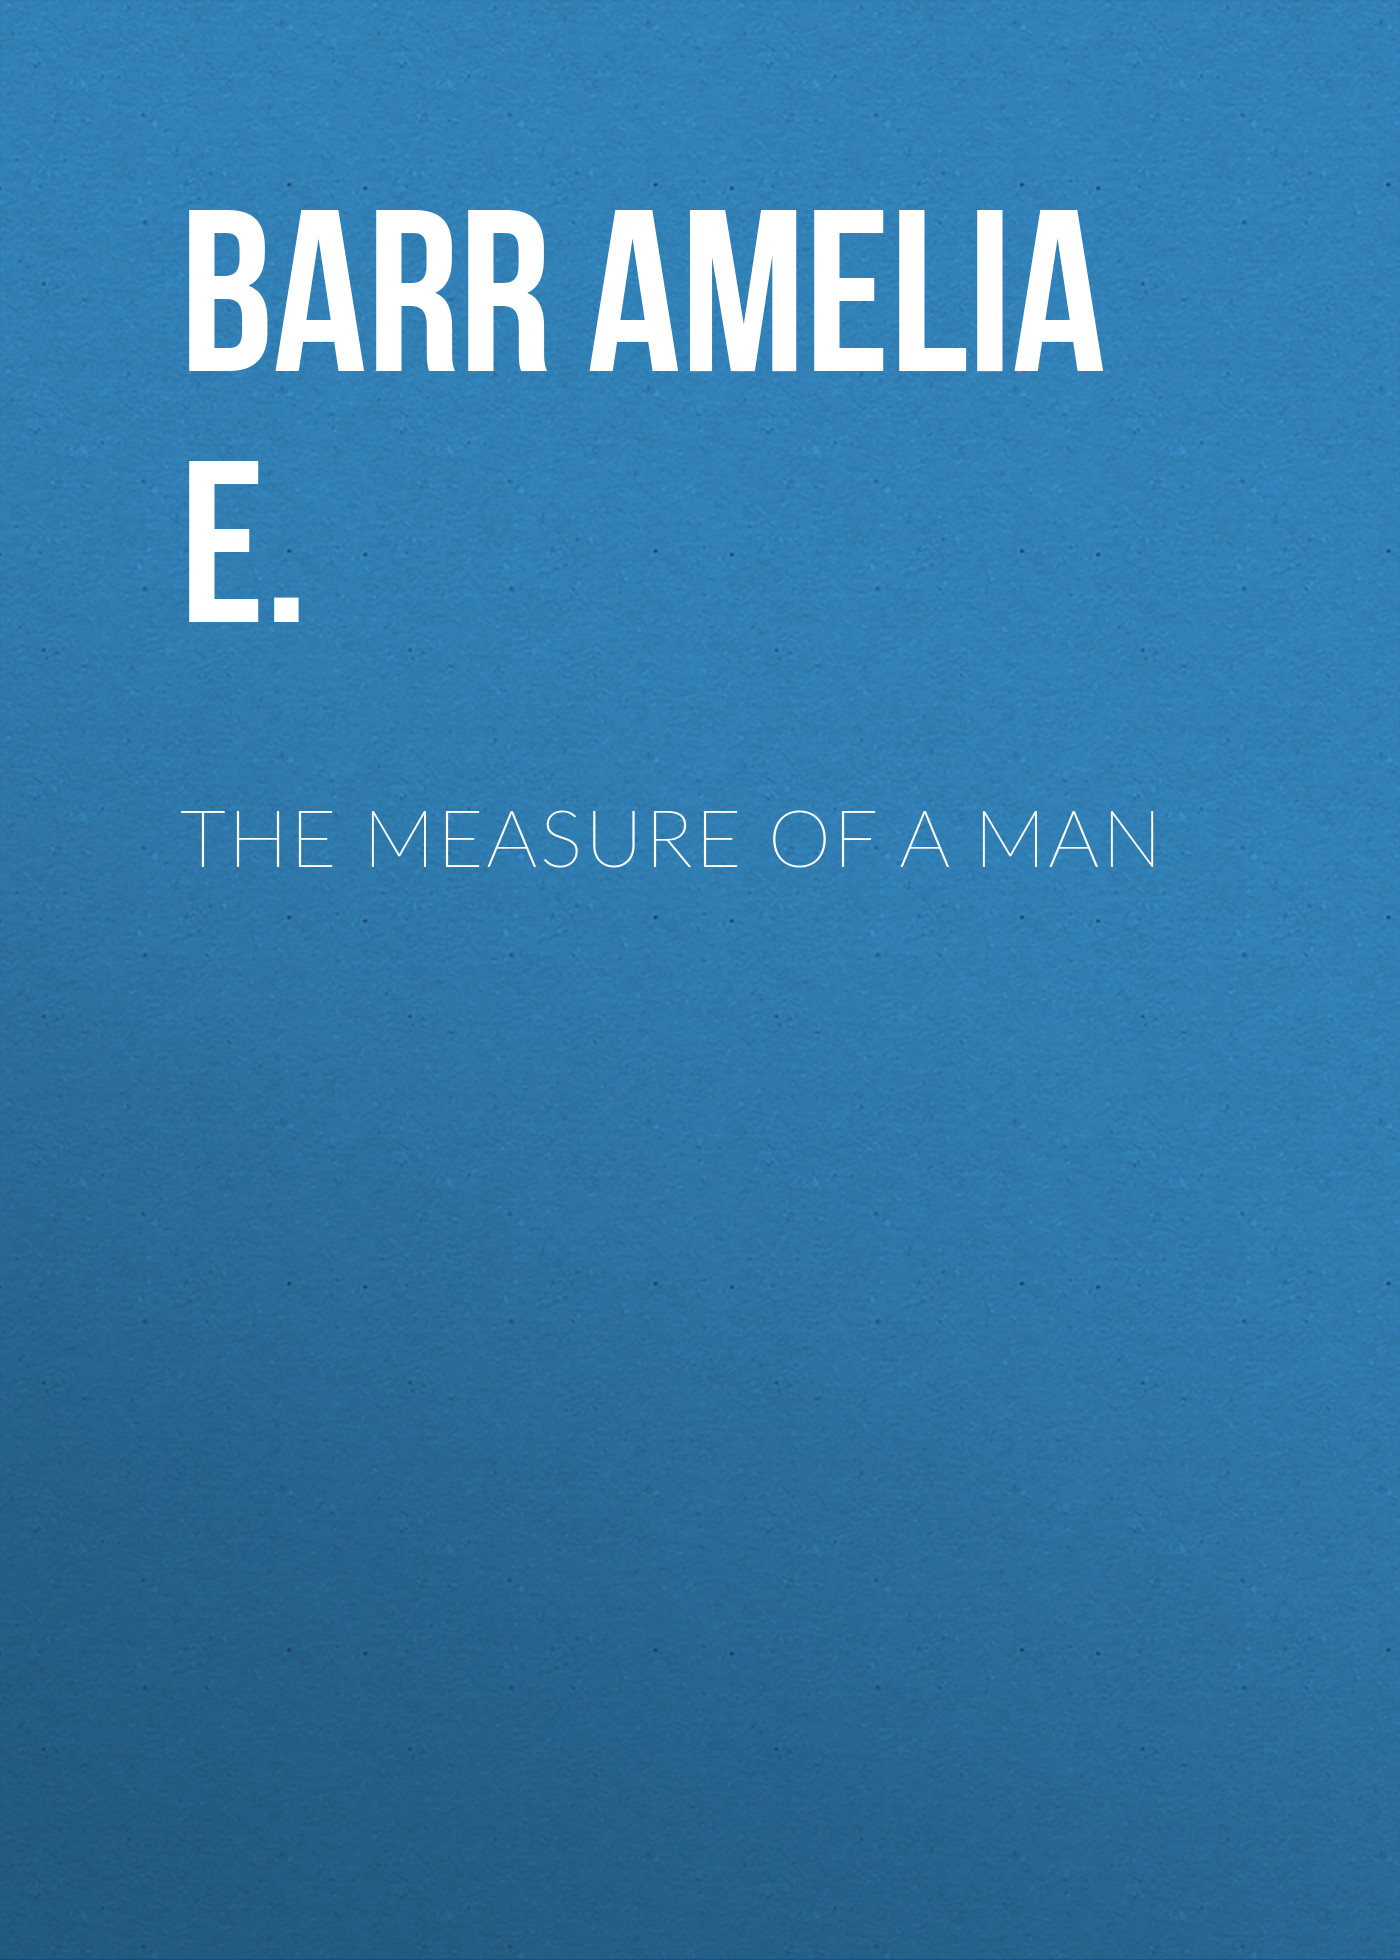 Barr Amelia E. The Measure of a Man barr amelia e all the days of my life an autobiography page 5 page 10 page 8